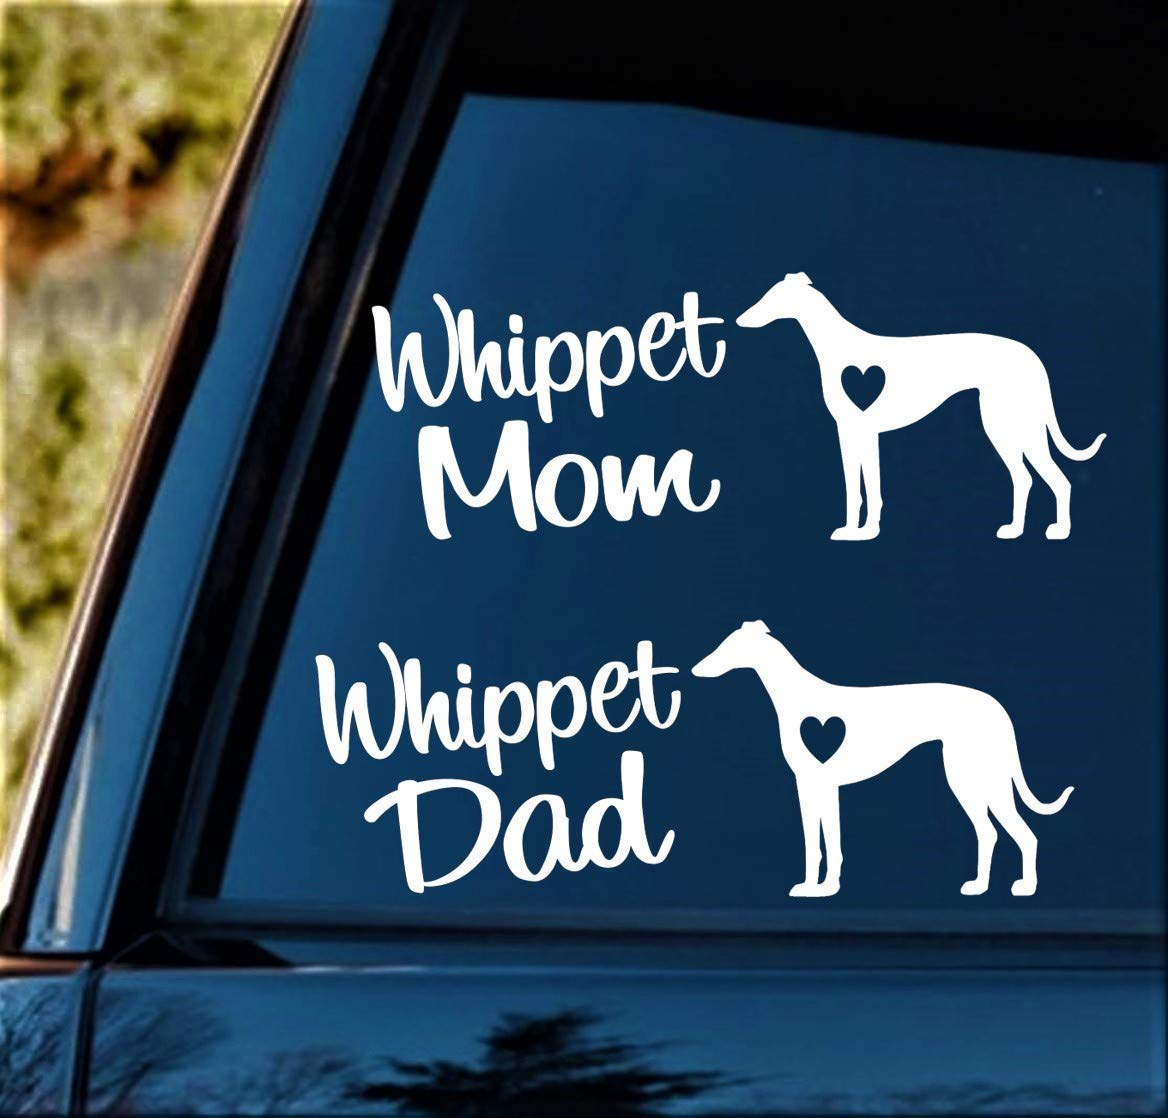 Whippet Mom and Whippet Dad Dog Decal Sticker for Car Window 8.0 Inch BG 244